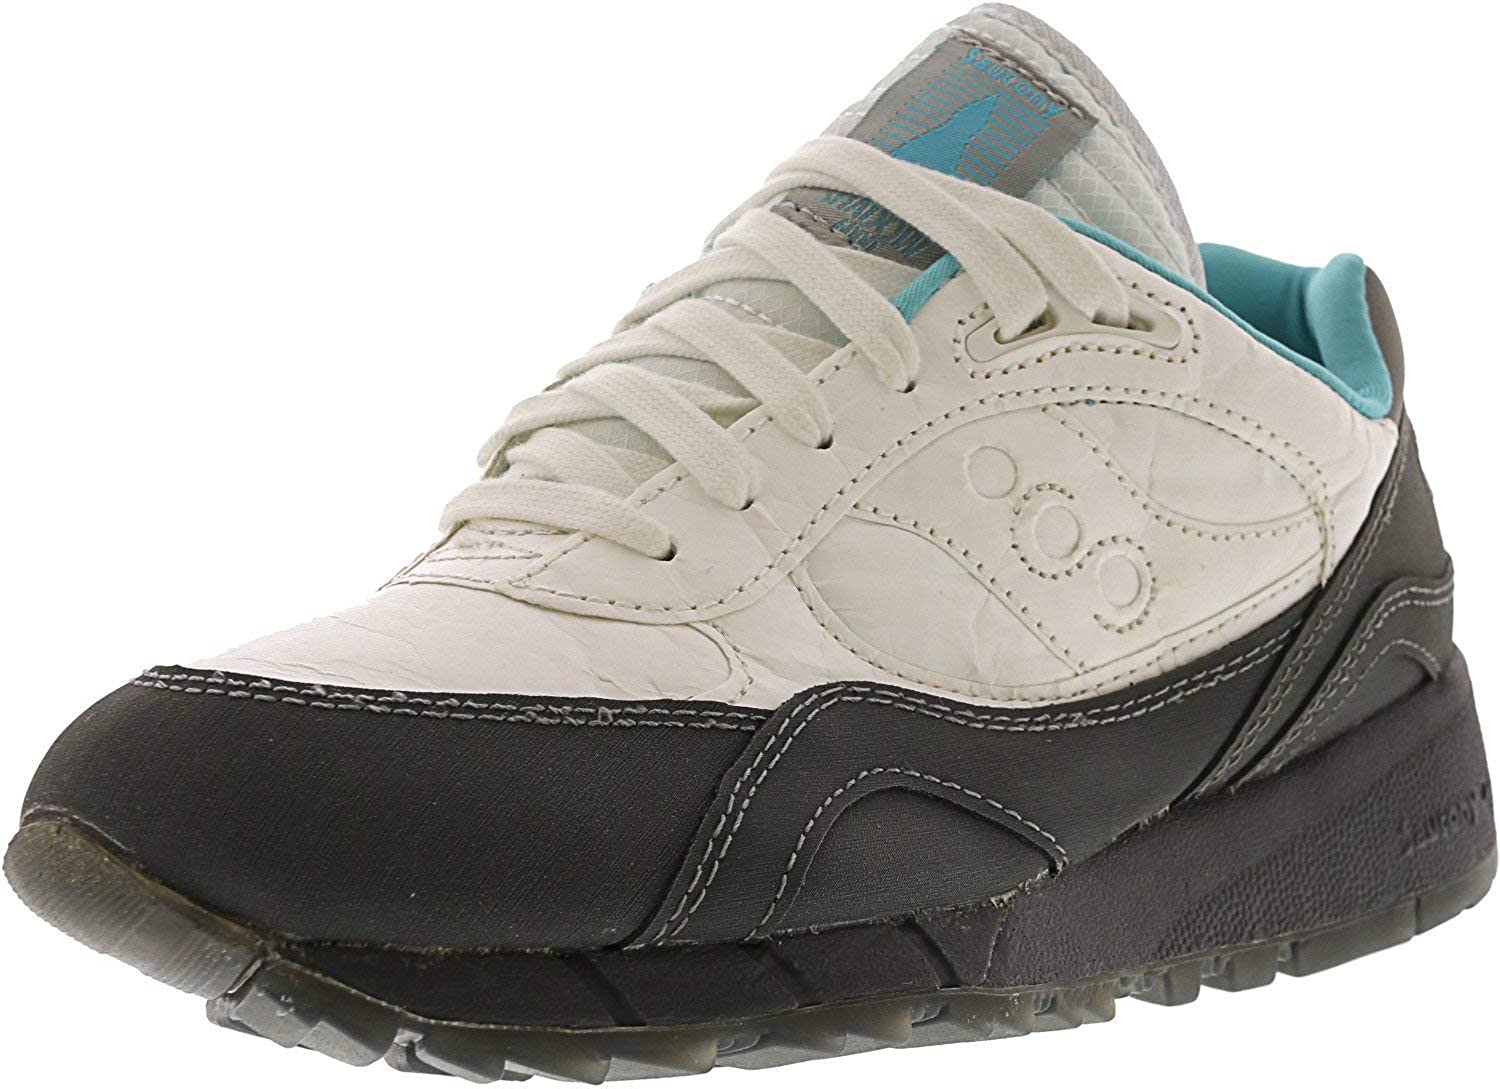 Saucony Men's Shadow 6000 Md Ankle-High Running shoes